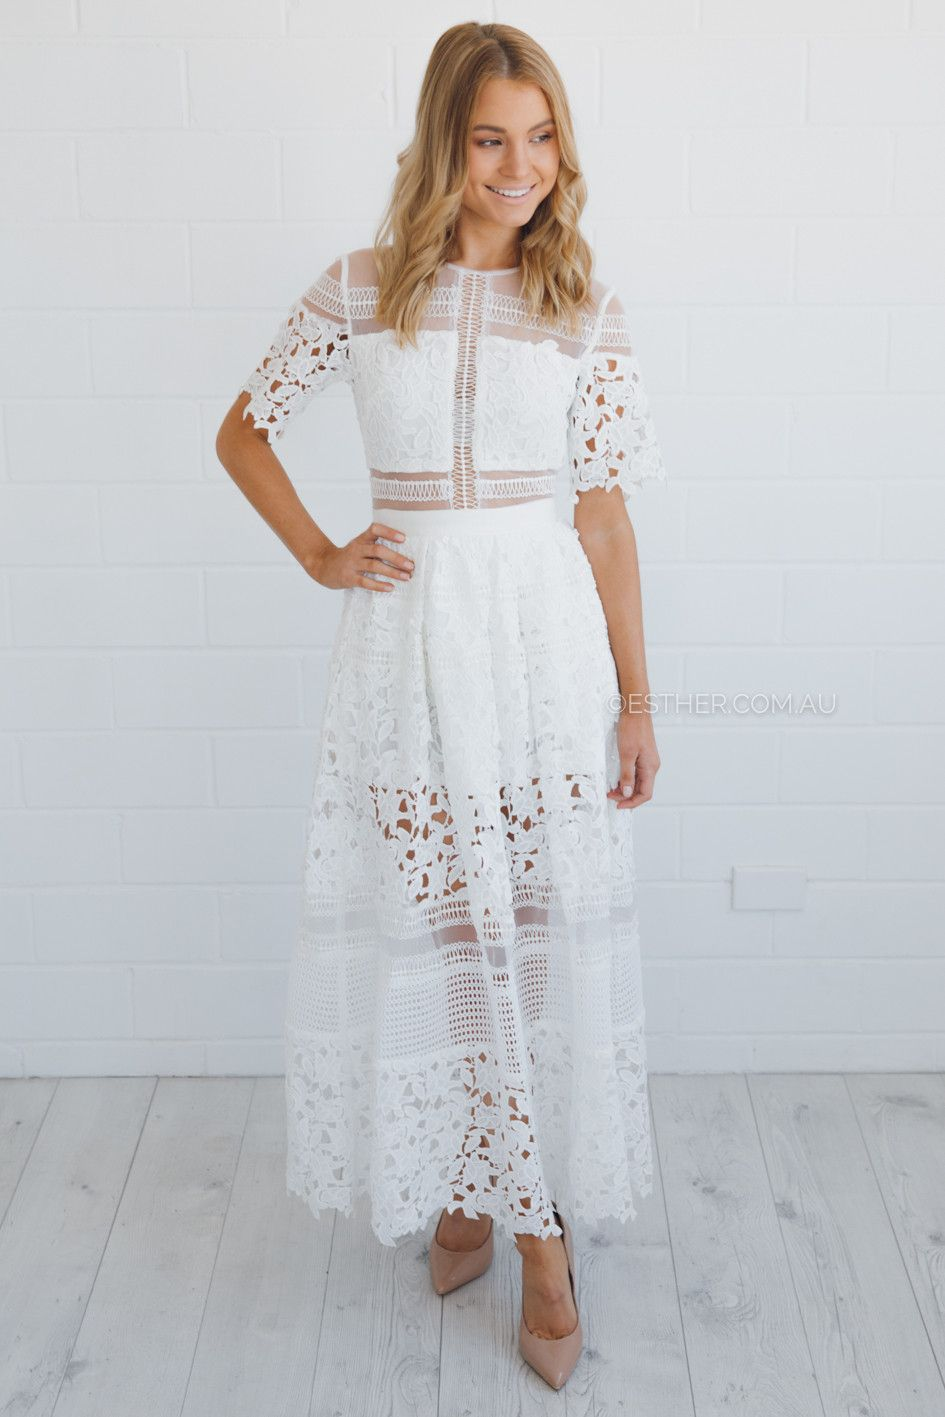 Stitch witchery australia white dresses